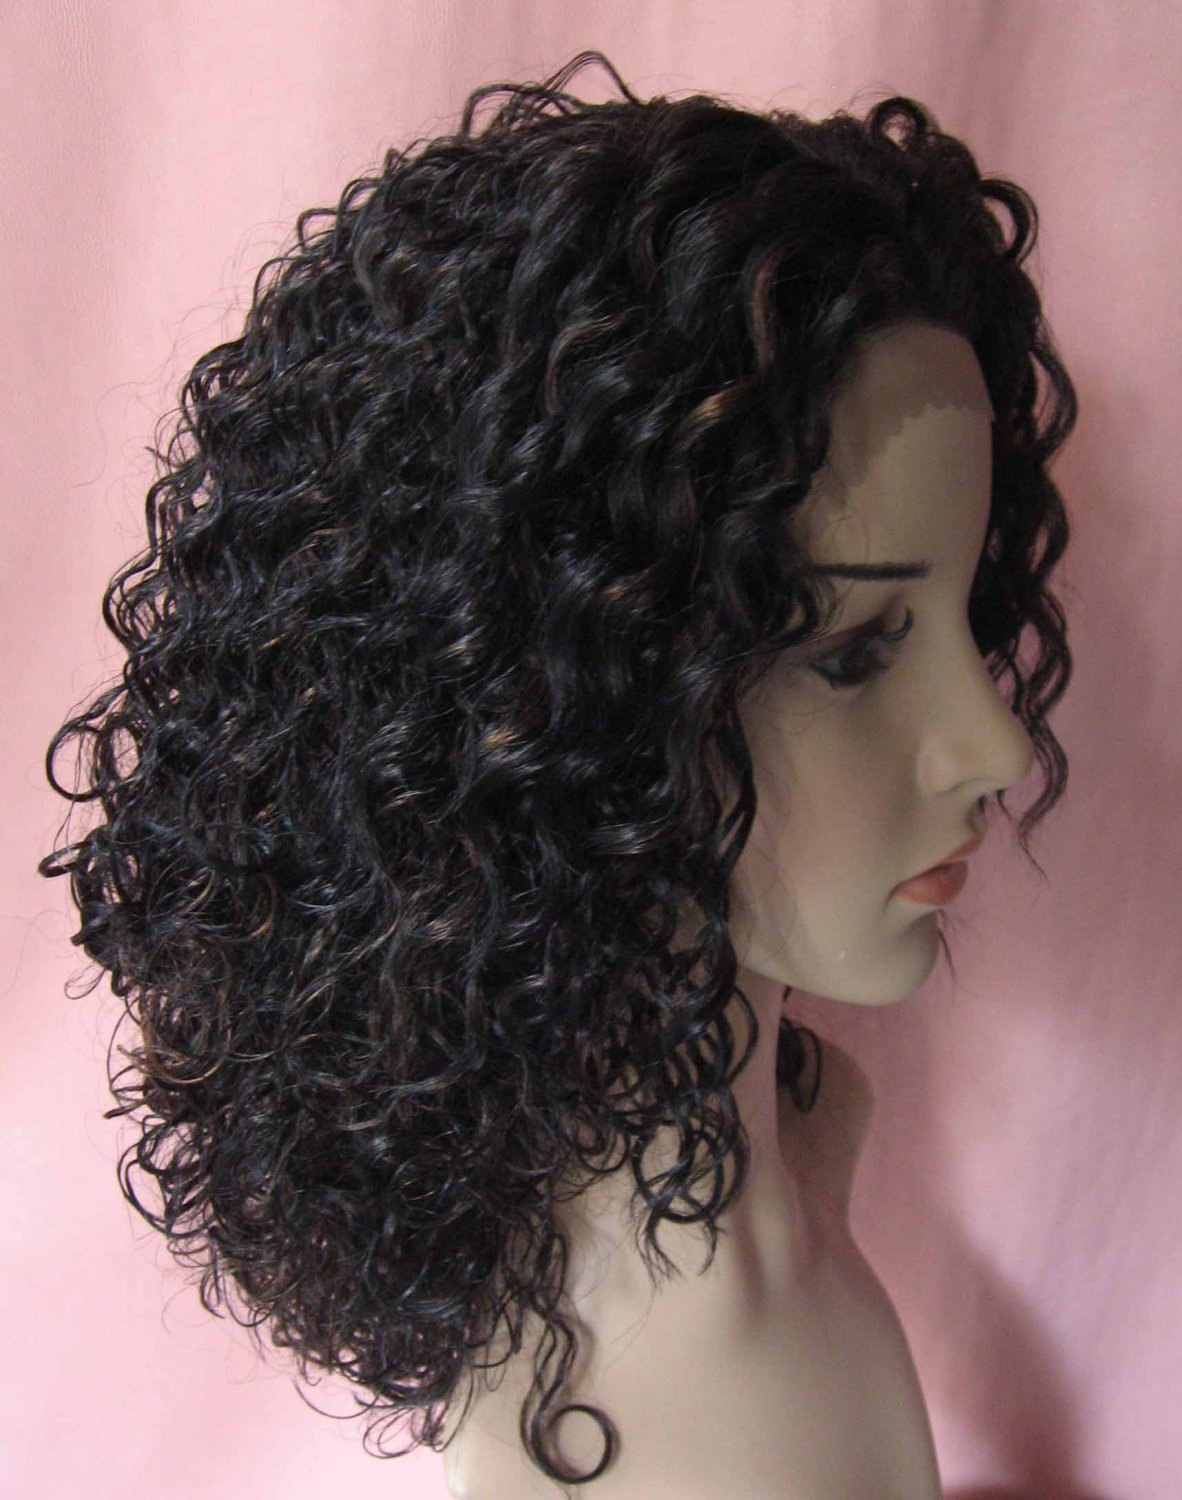 Exostic tight curl 16inch lace front wig 1b/30